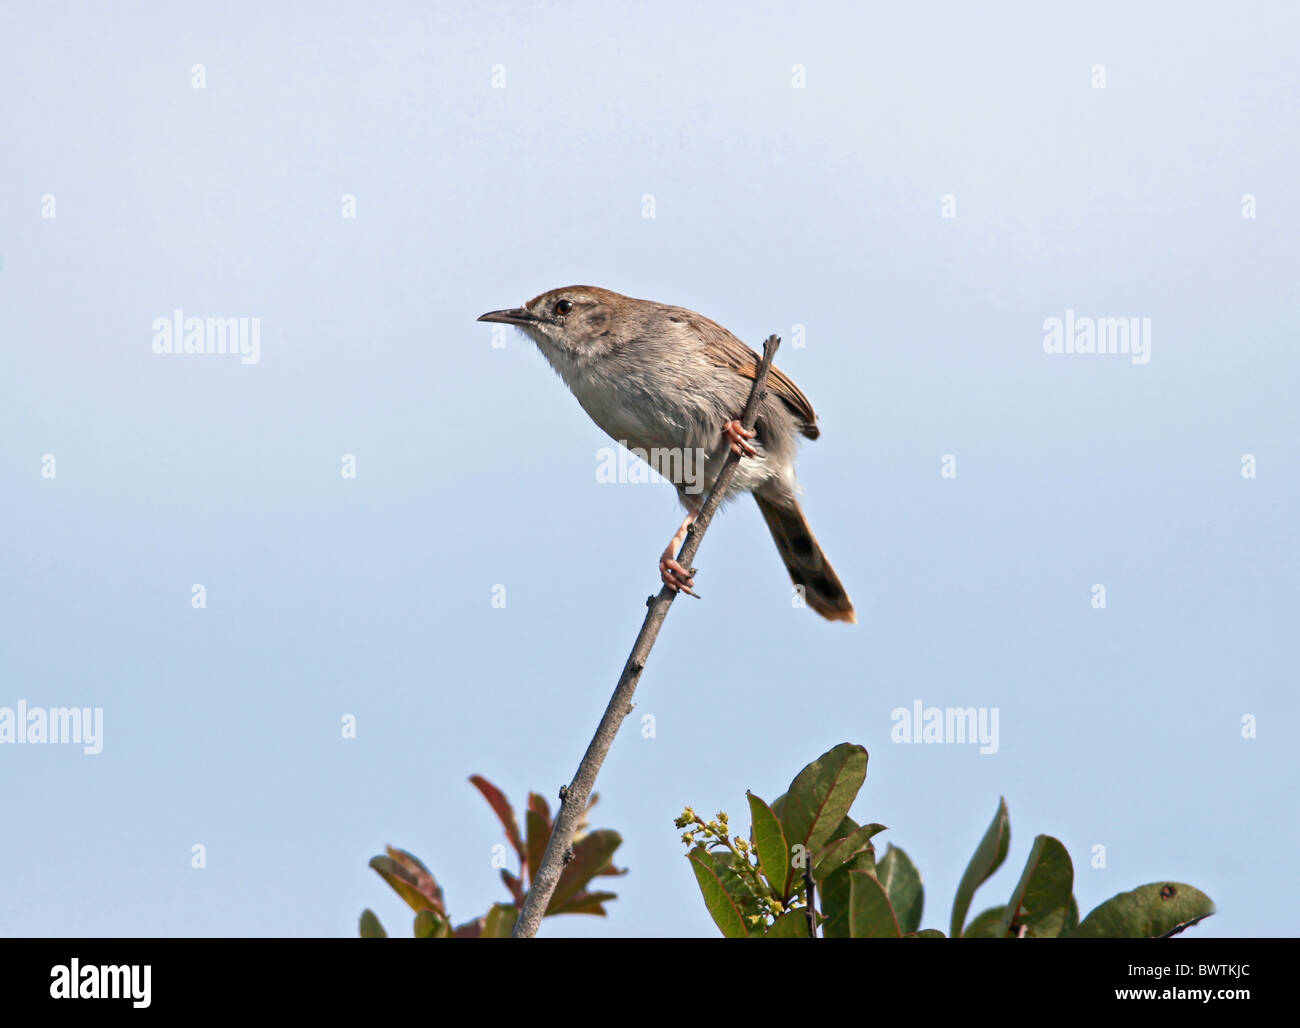 Red-headed Cisticola (Cisticola subruficapillus) adult, perched on twig, Western Cape, South Africa, august - Stock Image